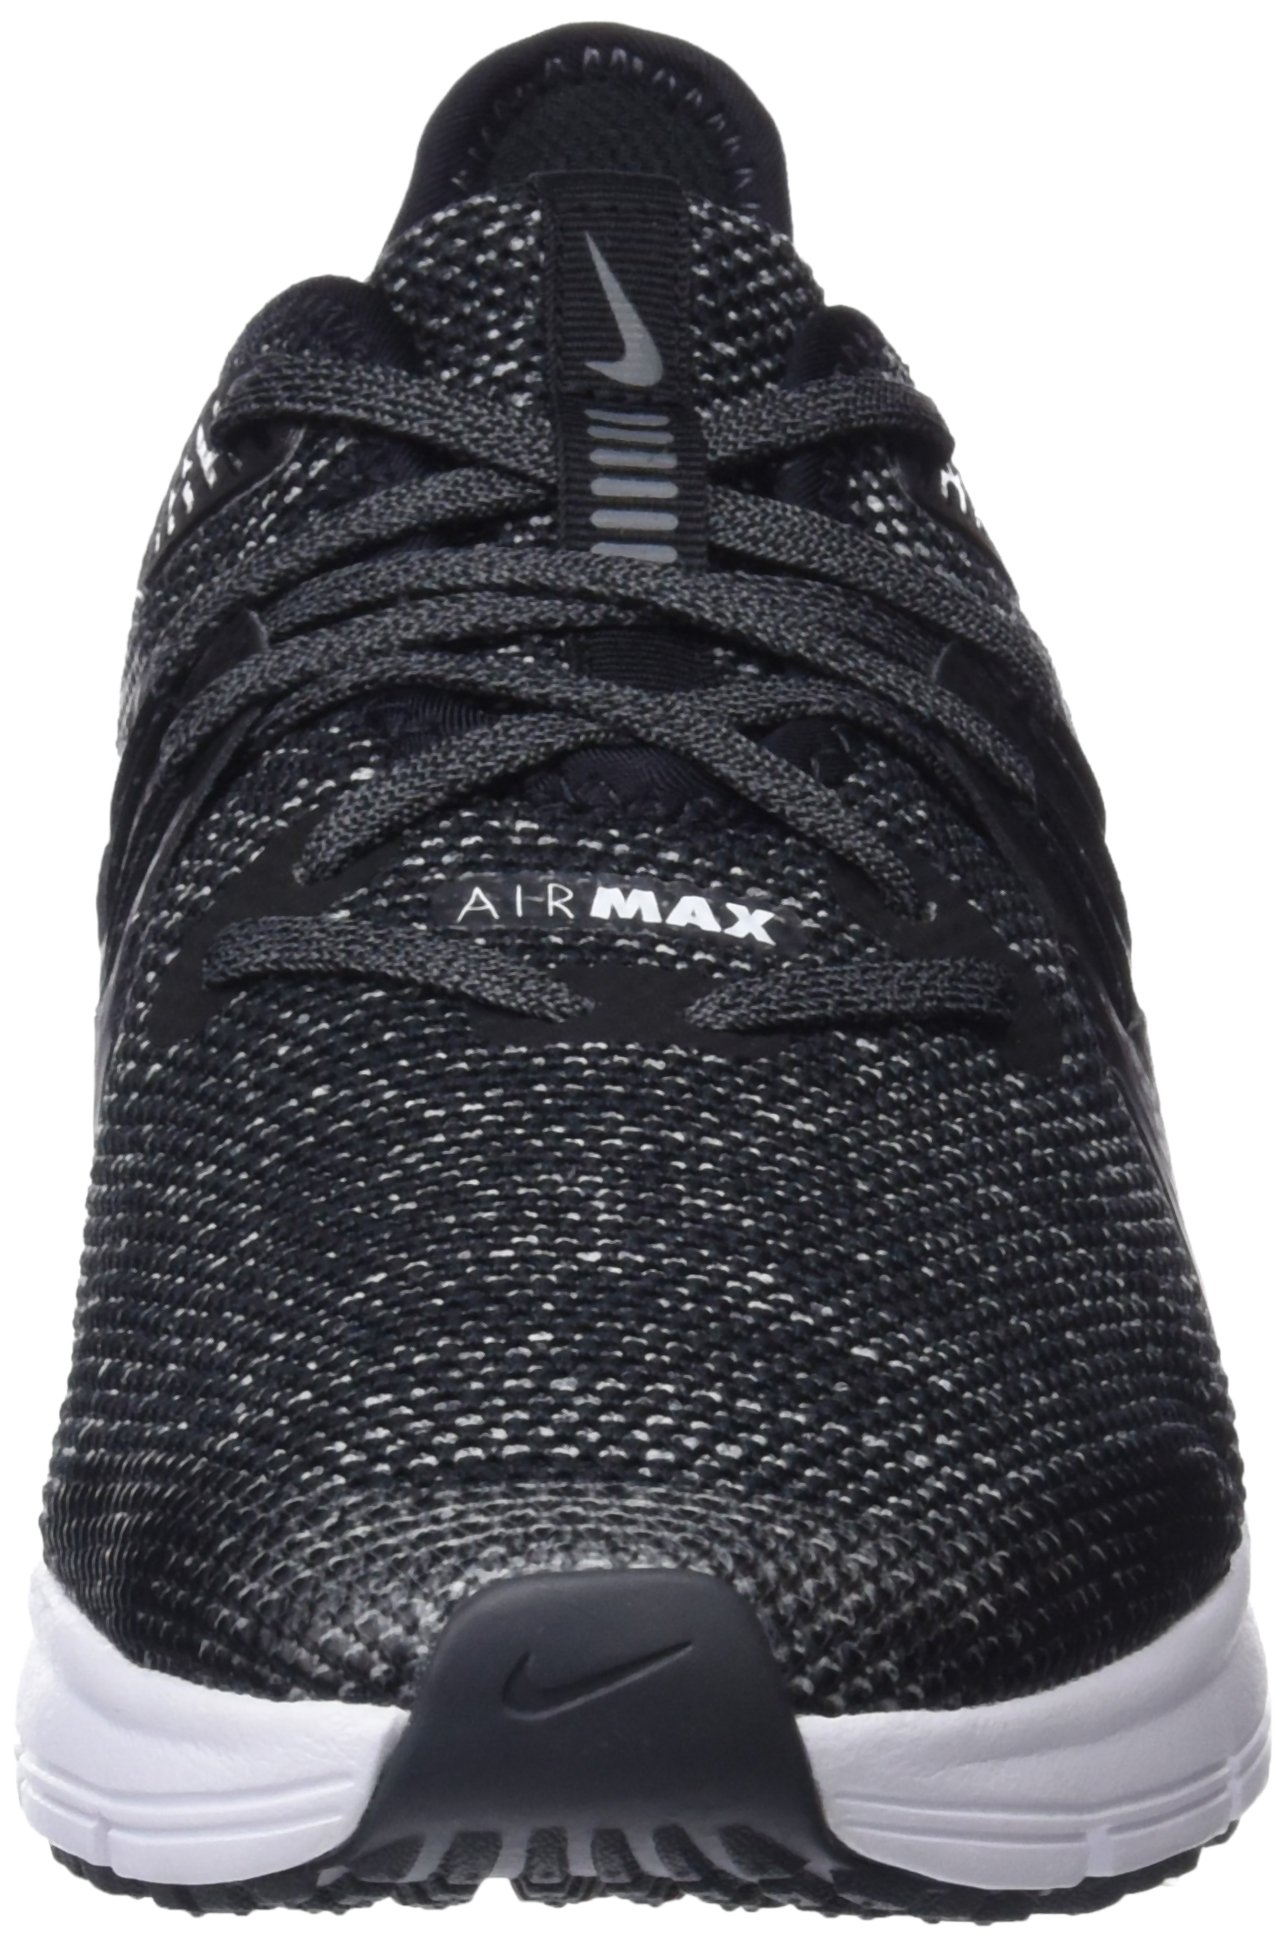 Nike Boy's Air Max Sequent 3 Running Shoe Black/White/Dark Grey Size 3.5 M US by Nike (Image #4)